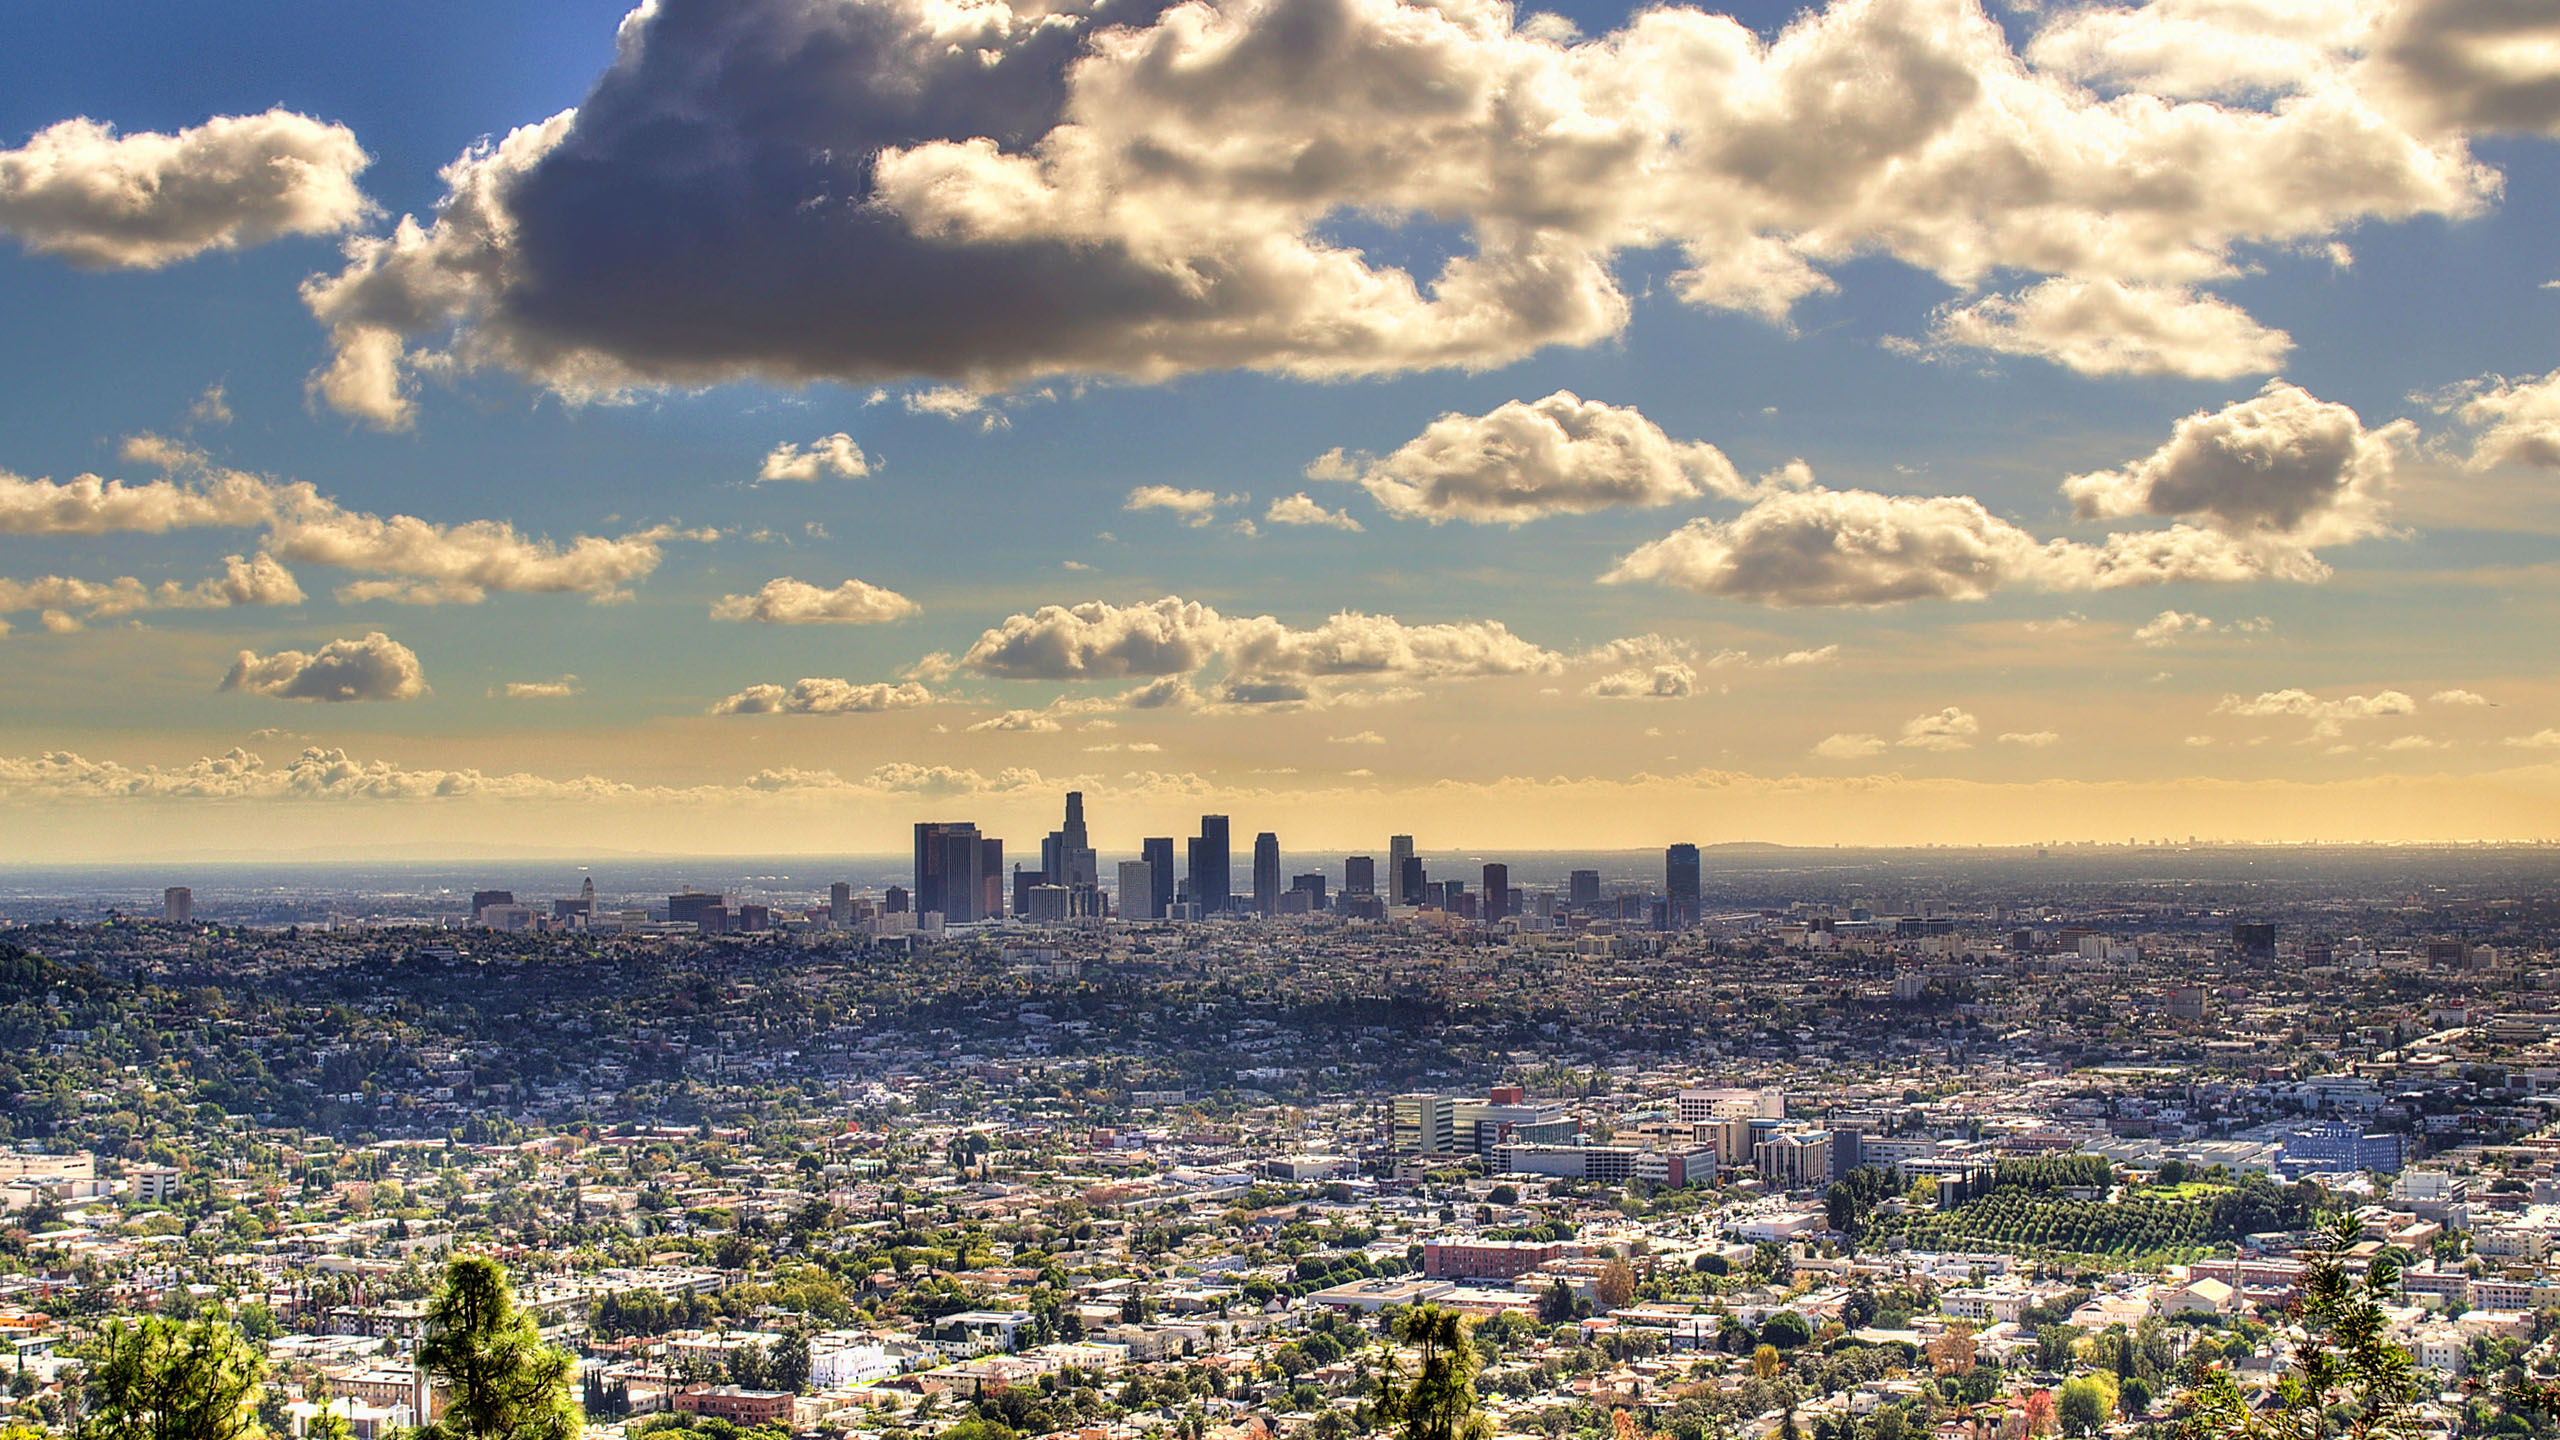 ... fantastic-los-angeles-wallpaper-41391-42384-hd-wallpapers ...